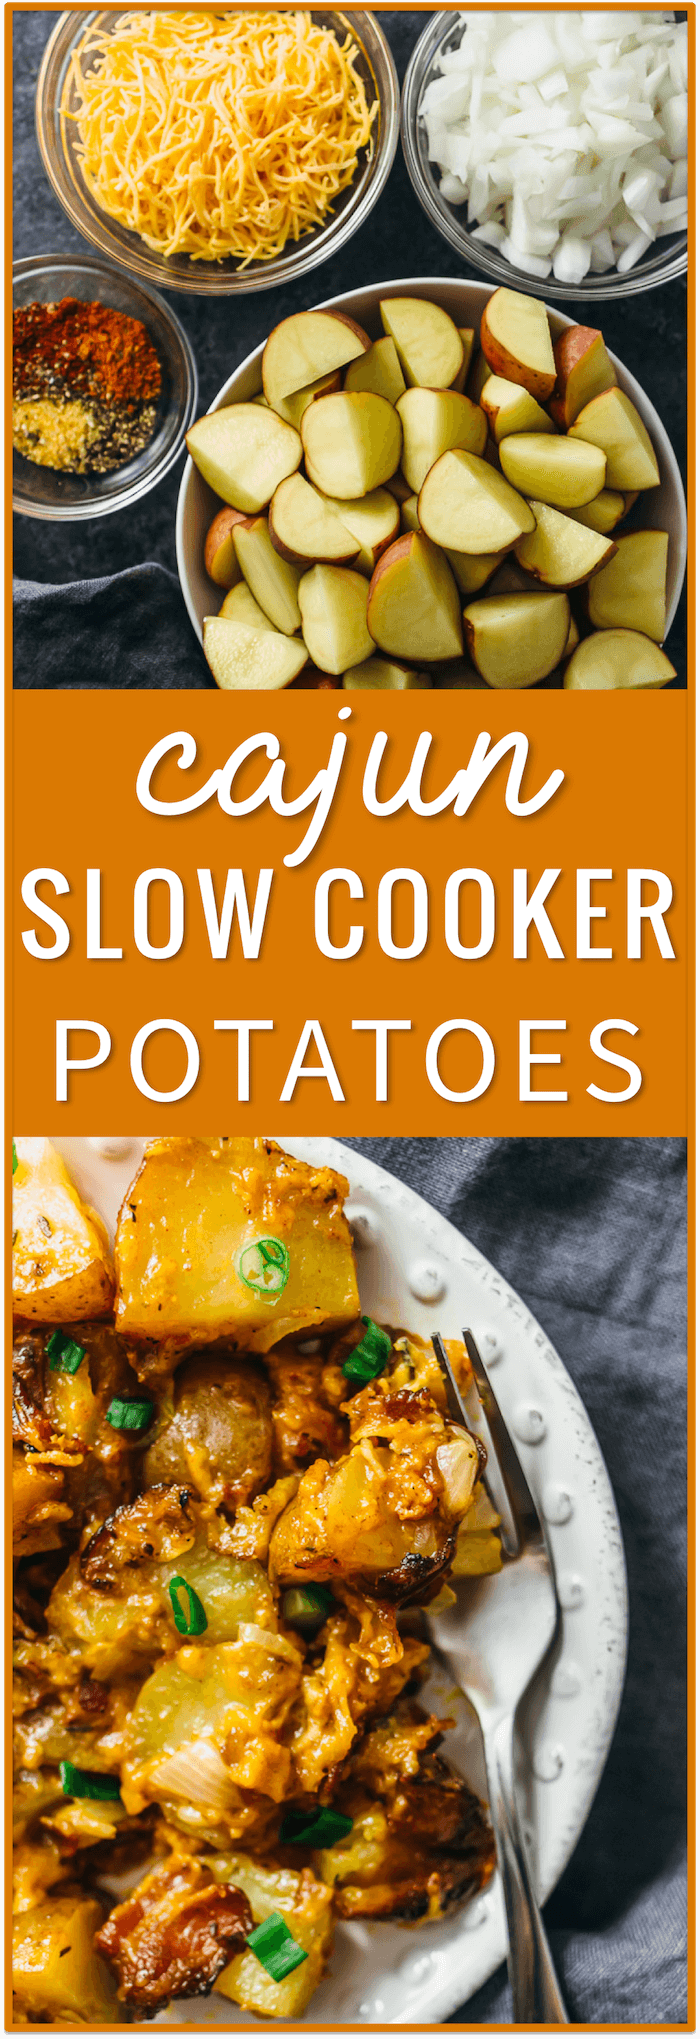 cajun slow cooker potatoes, bacon, cheddar cheese, dinner, lunch, breakfast, brunch, easy, recipe, cheesy potatoes, roasted potatoes, mashed potatoes, au gratin, red potatoes, soup, sausage, baked, crock pots, scalloped, cheese, and carrots